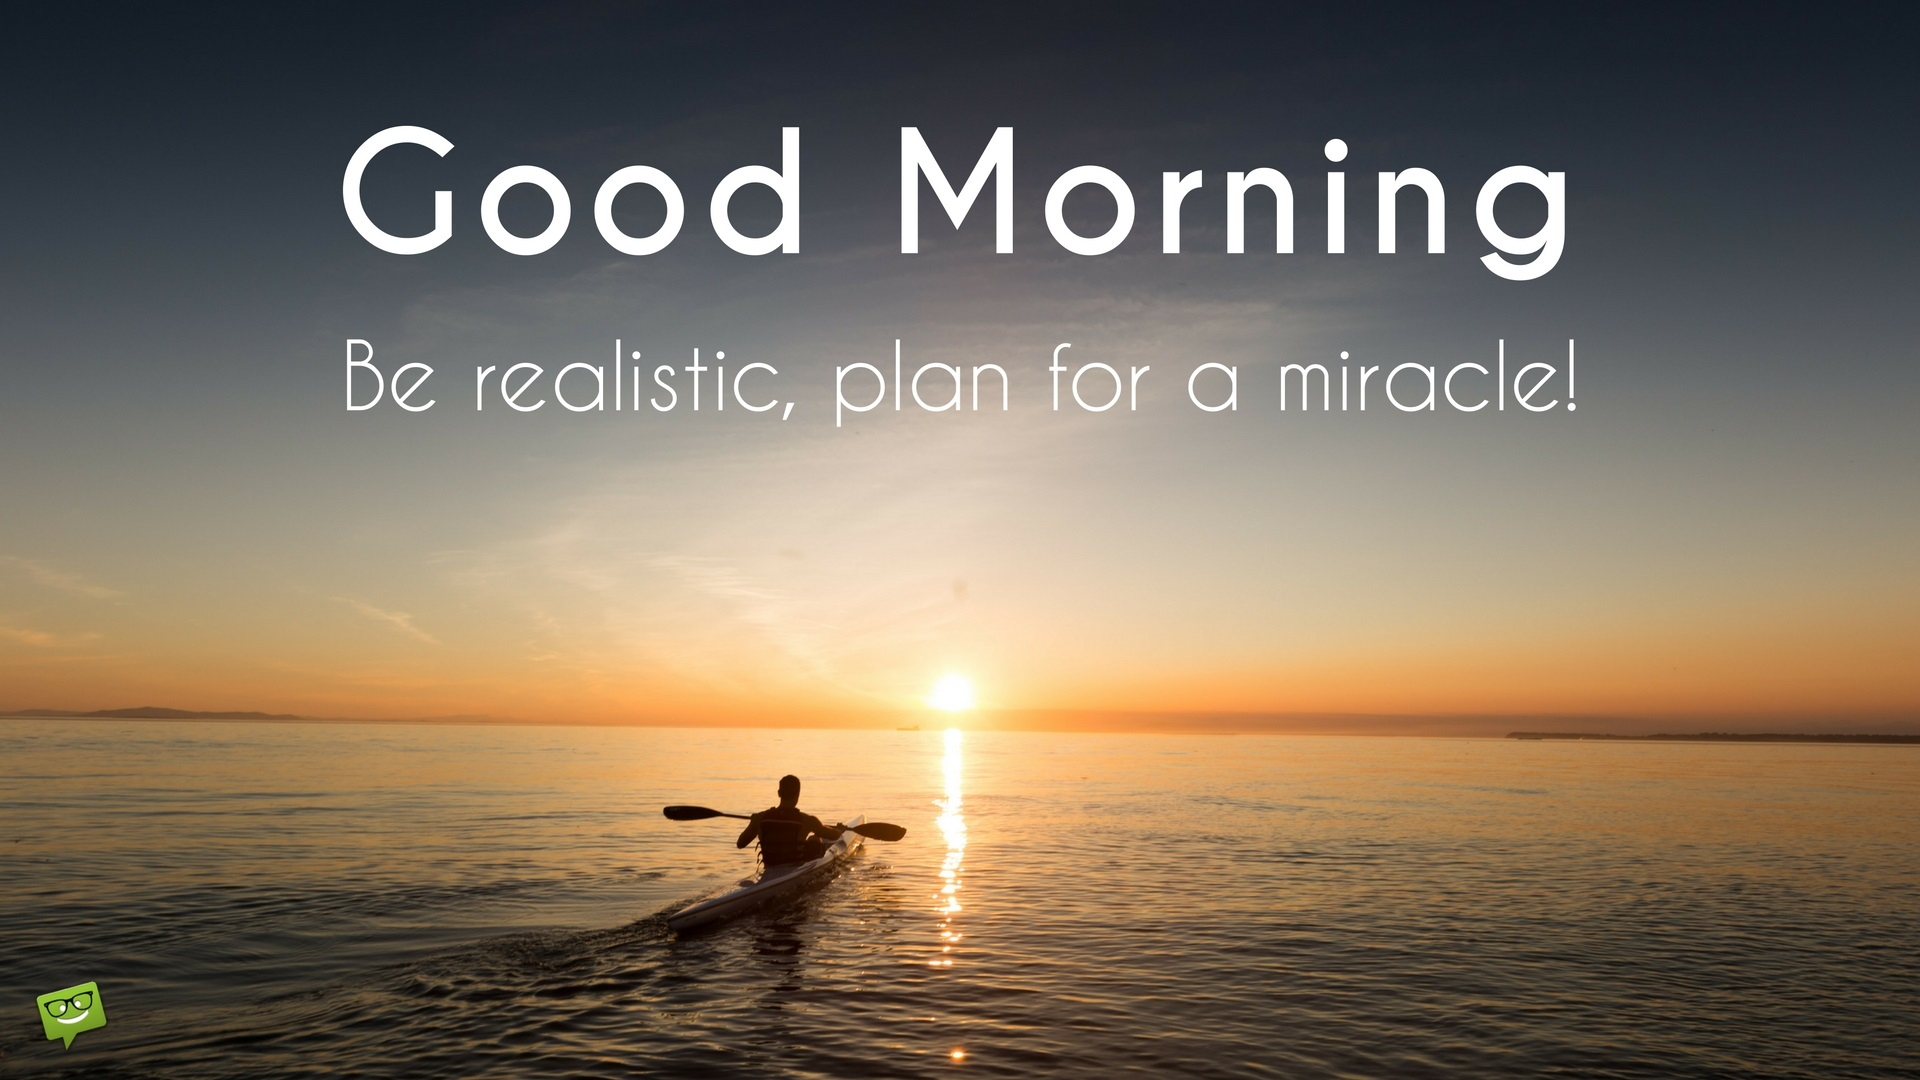 Good Morning Tuesday Wishes Quotes Images - Inspirational Morning Greeting Quotes , HD Wallpaper & Backgrounds